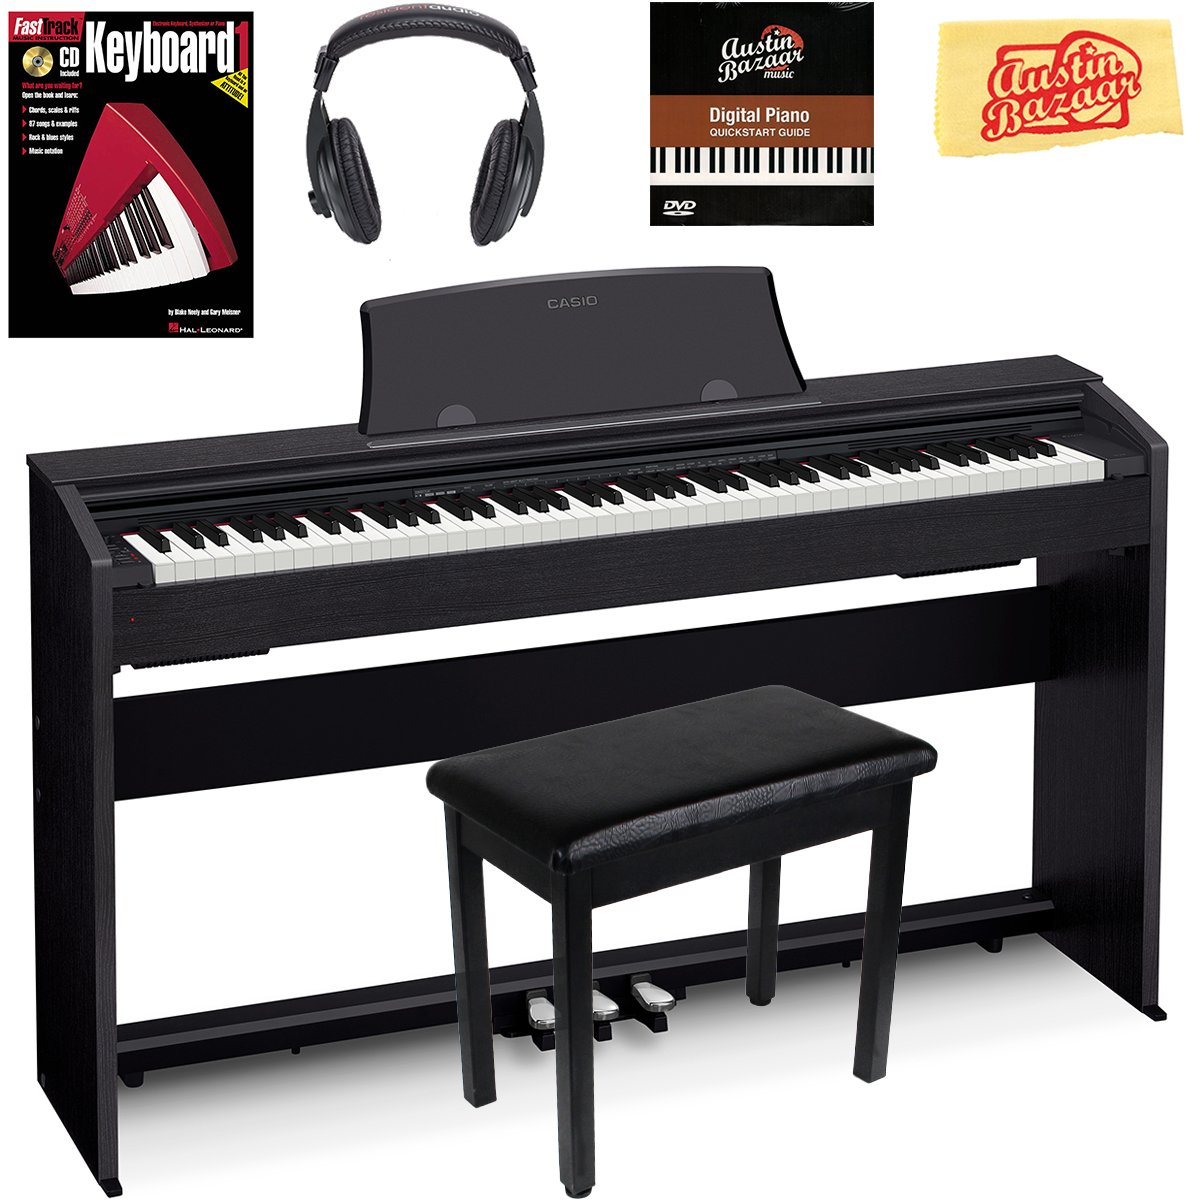 Casio Privia PX-770 Digital Piano - Black Bundle with Furniture Bench, Instructional Book, Austin Bazaar Instructional DVD, and Polishing Cloth